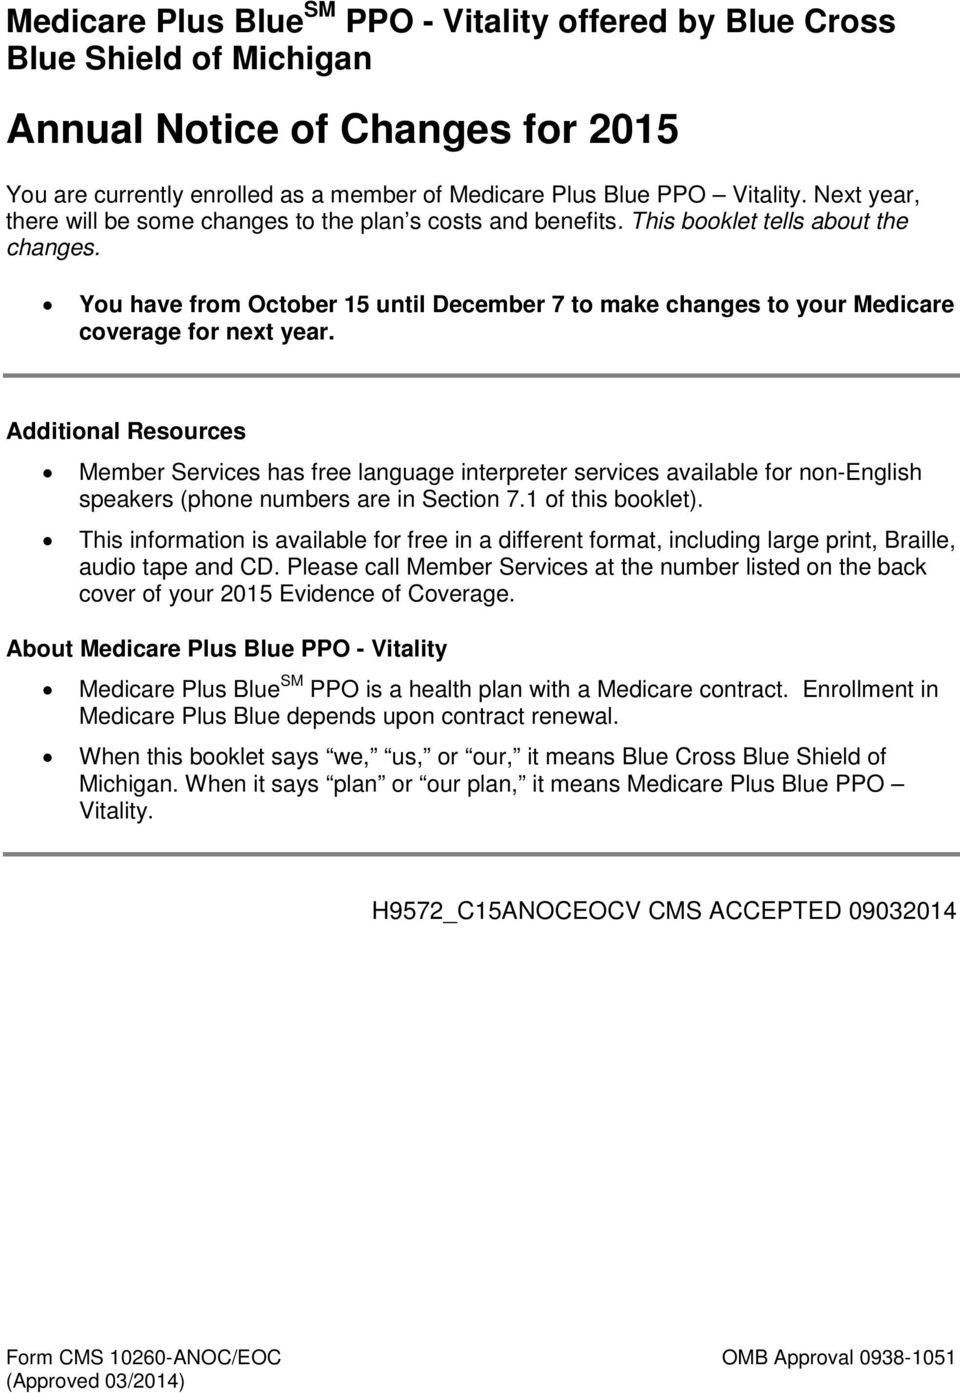 You have from October 15 until December 7 to make changes to your Medicare coverage for next year.